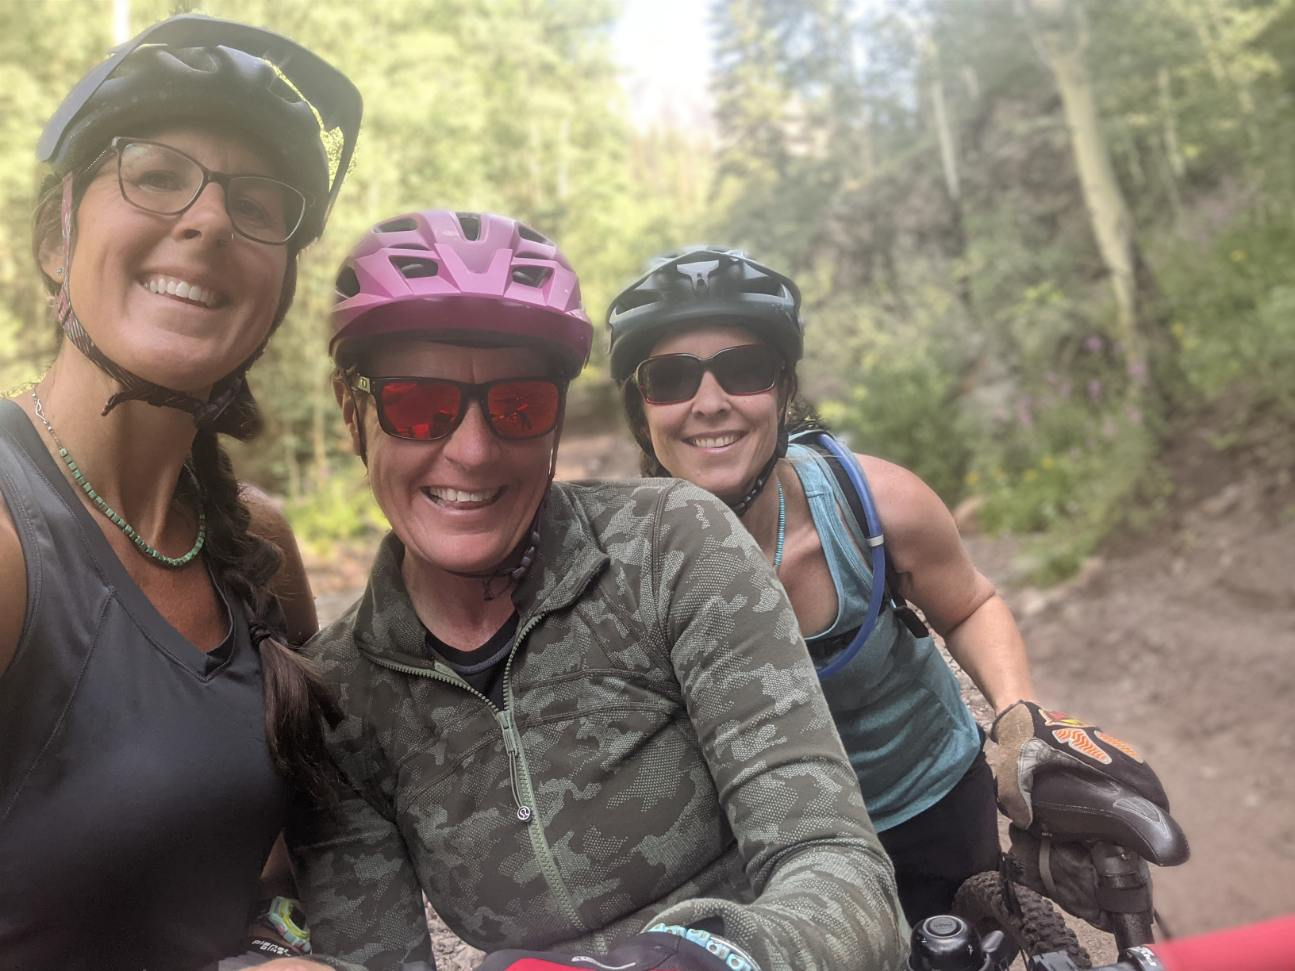 Laurel Darren (center) poses with her Lake City mountain bike pals Amanda Hartman (left) and Lydia McNeese (right) during a training ride this summer. The scenic beauty of Colorado's San Juan Mountains provides an incredible backdrop.